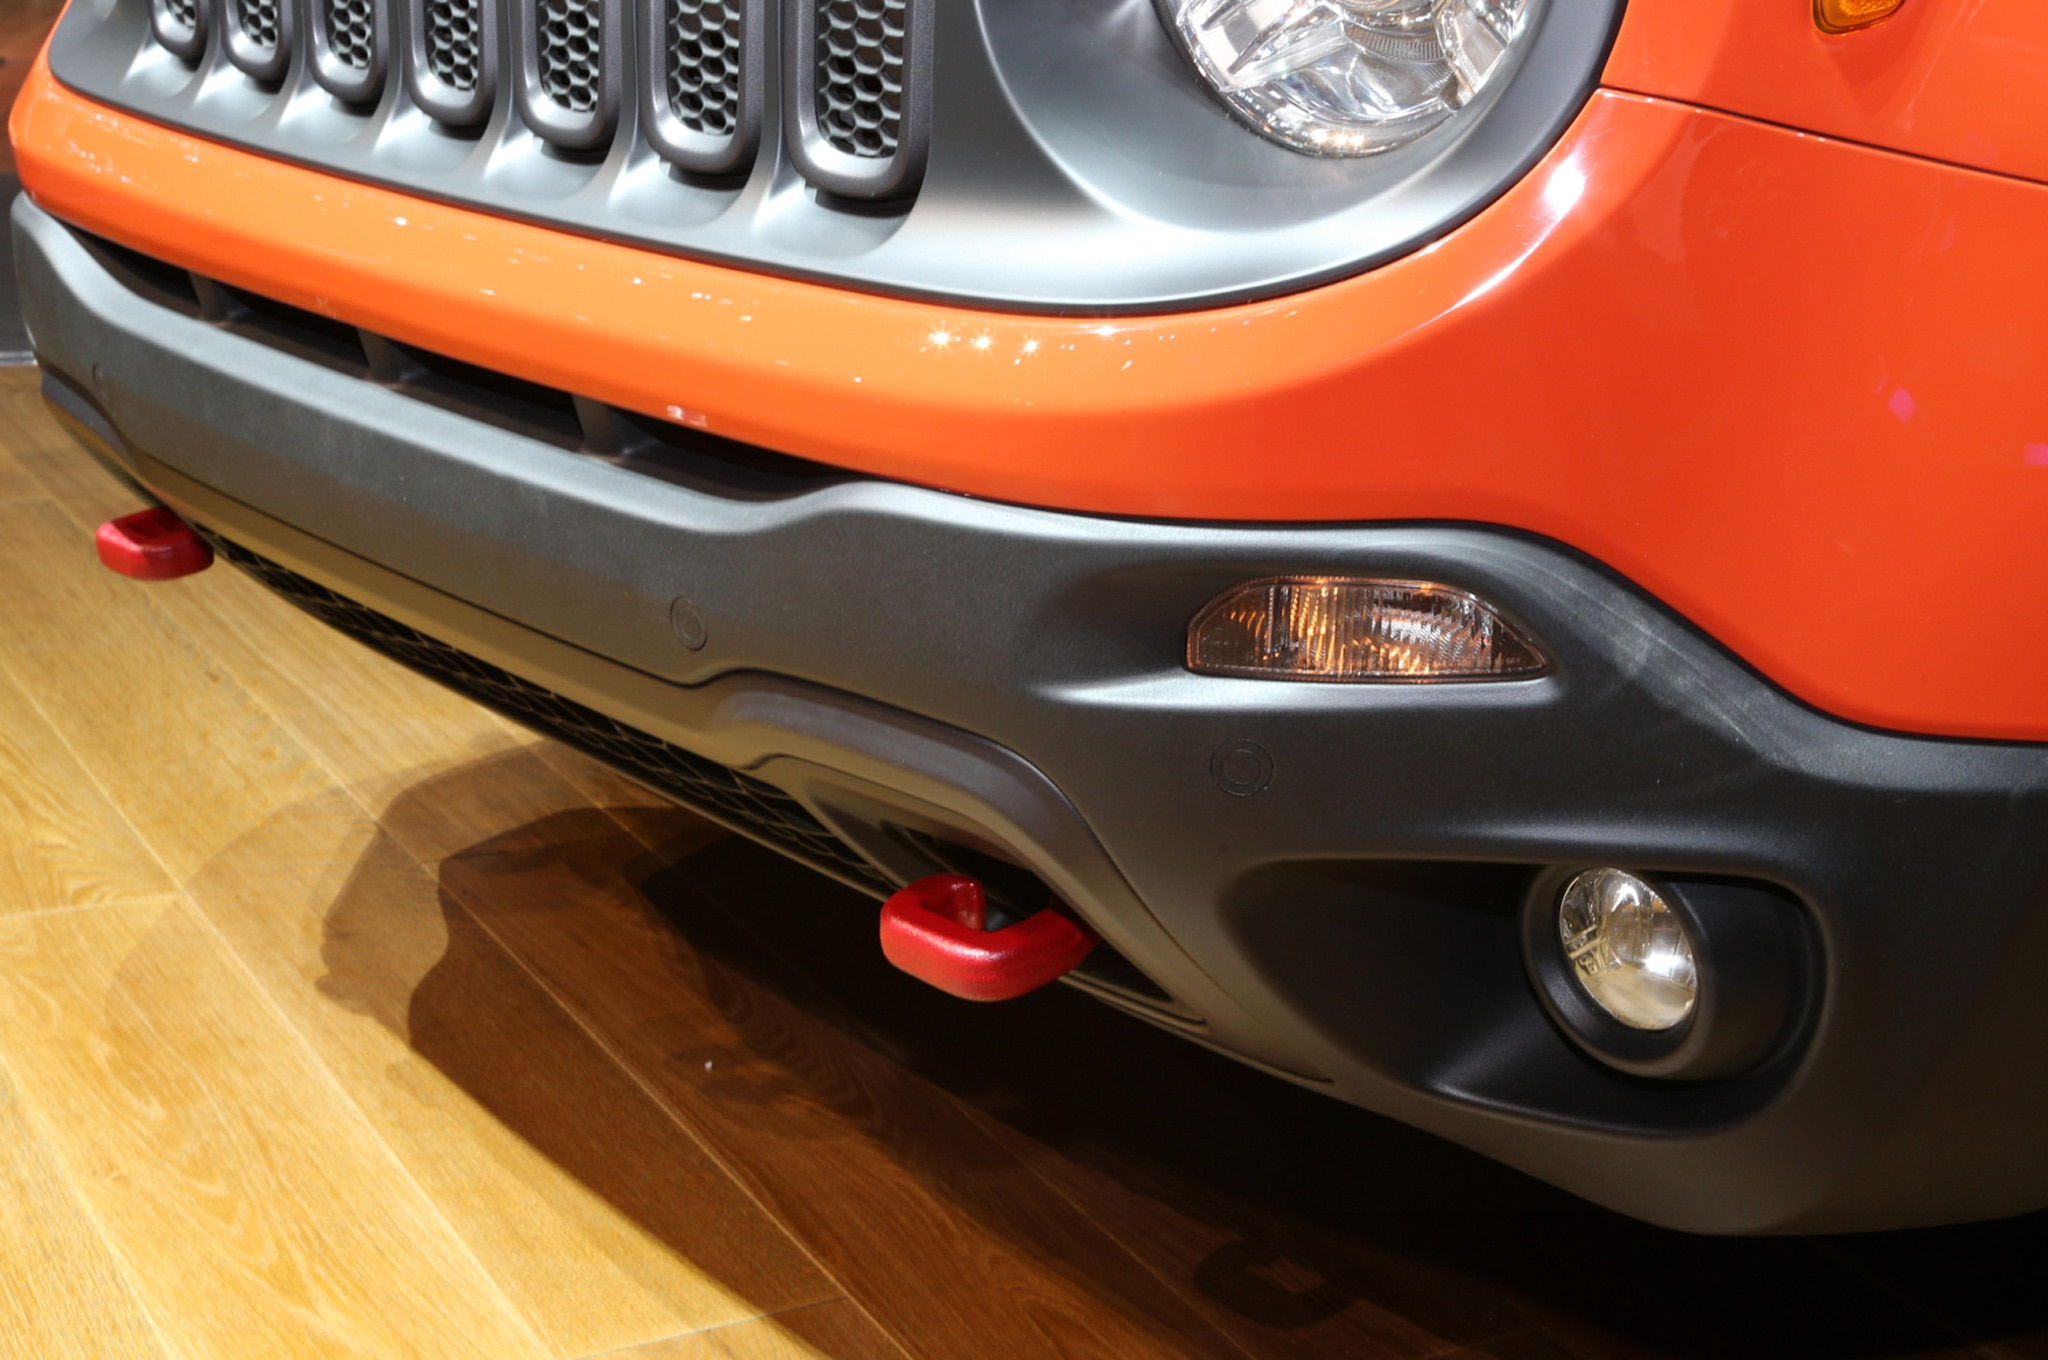 2015 Jeep Renegade Trailhawk show floor